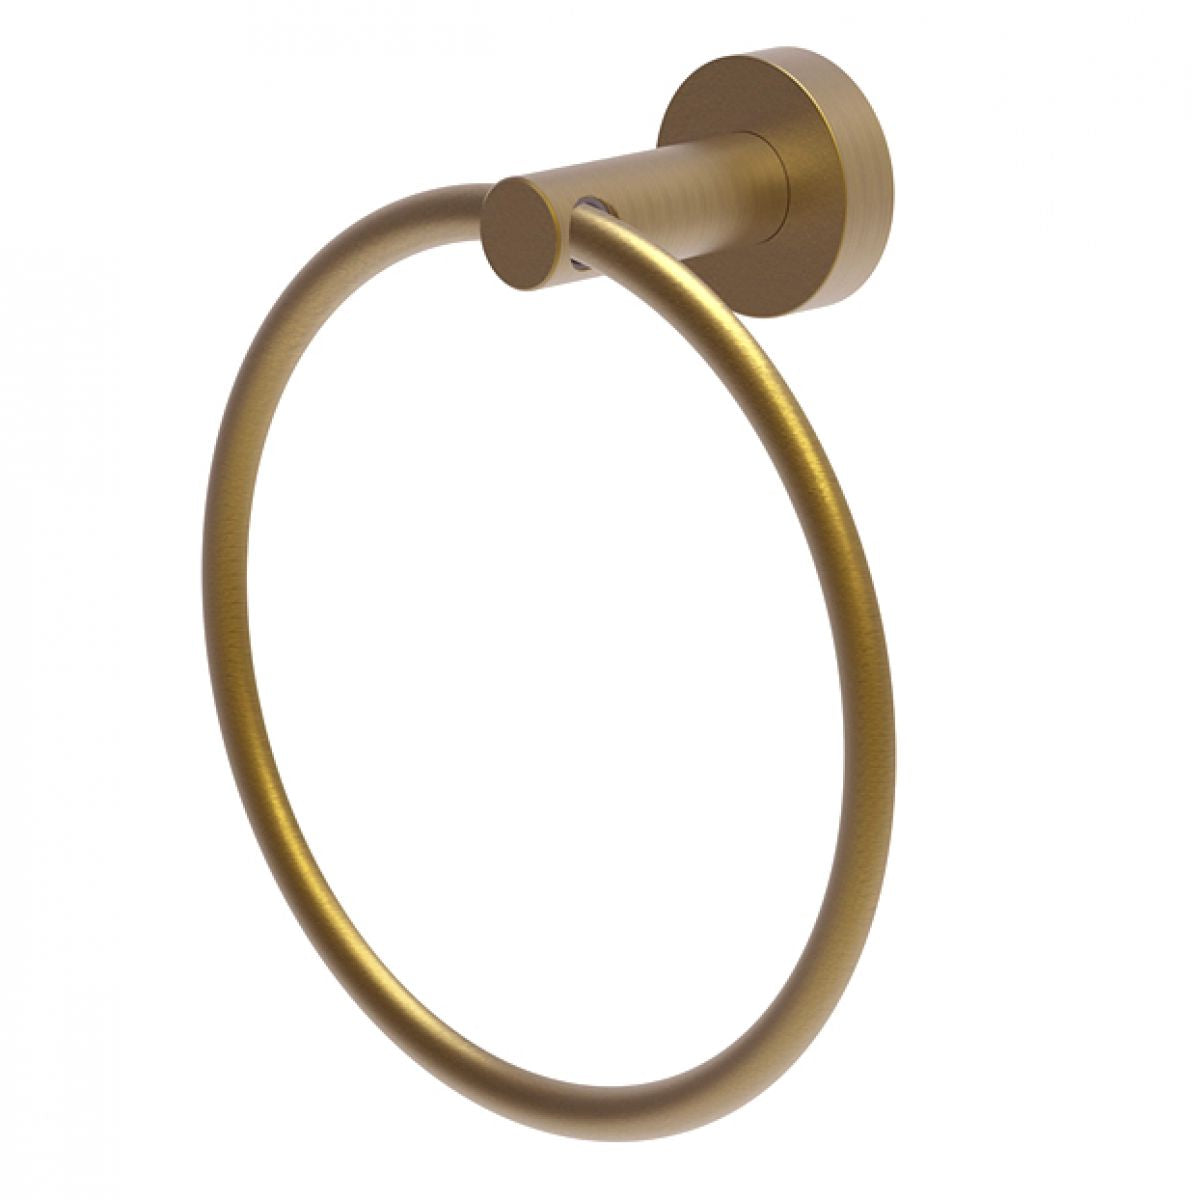 Britton Hoxton Towel Ring - blueskybathrooms